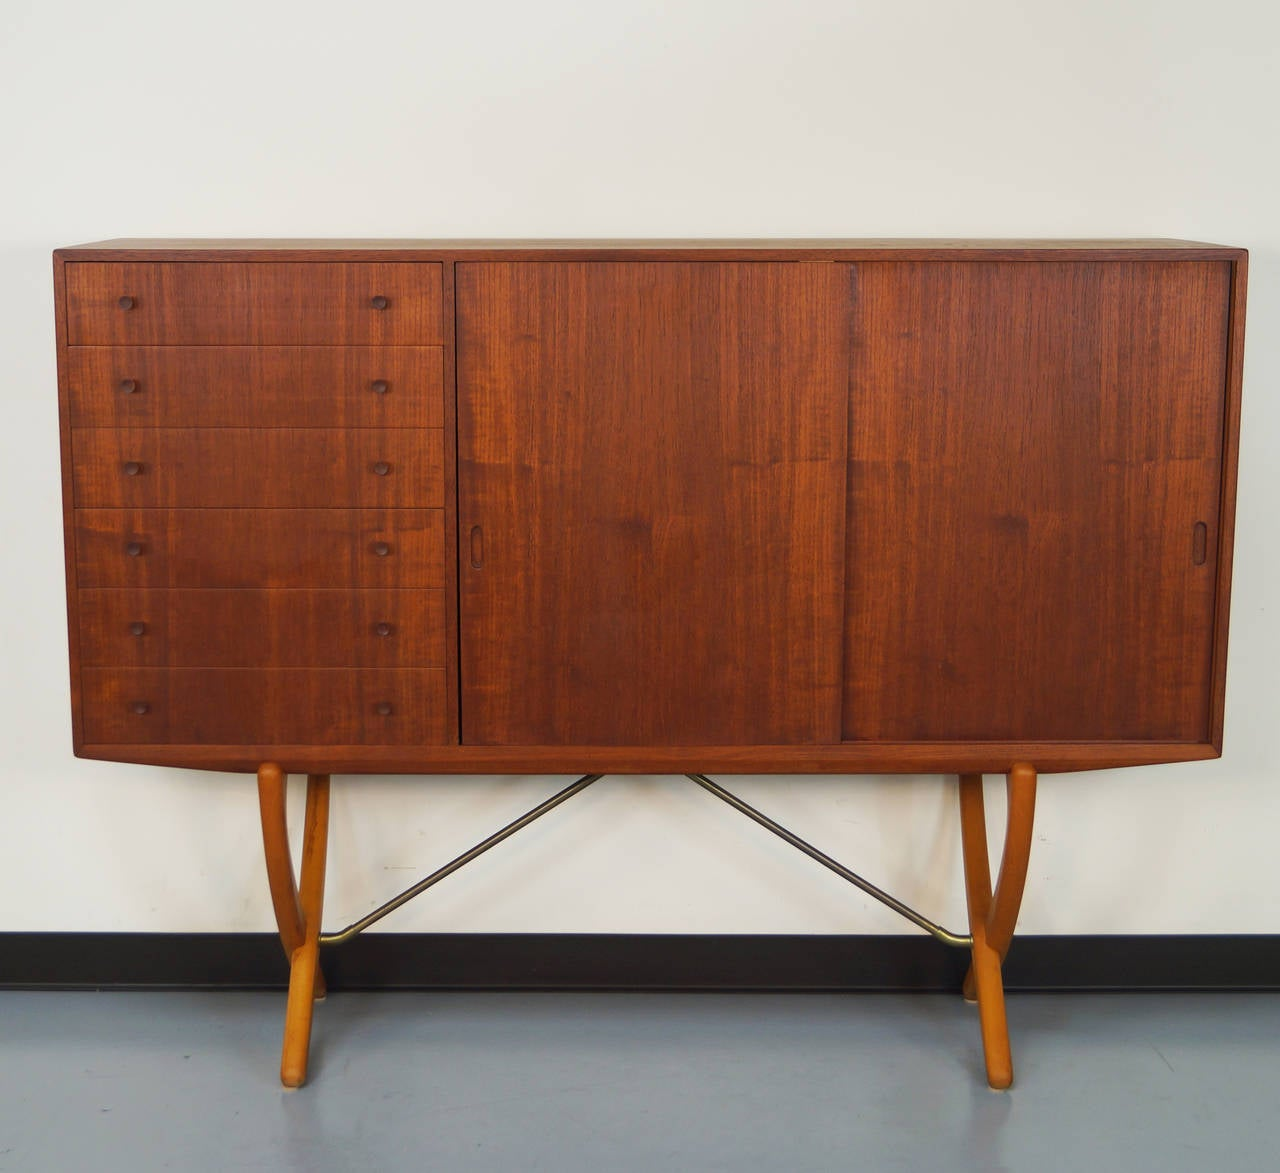 Danish modern teak credenza designed by Hans J. Wegner for Carl Hansen. Features six dovetail drawers and two sliding doors concealing three adjustable shelves and shallow drawers/trays. This piece is in excellent vintage condition.